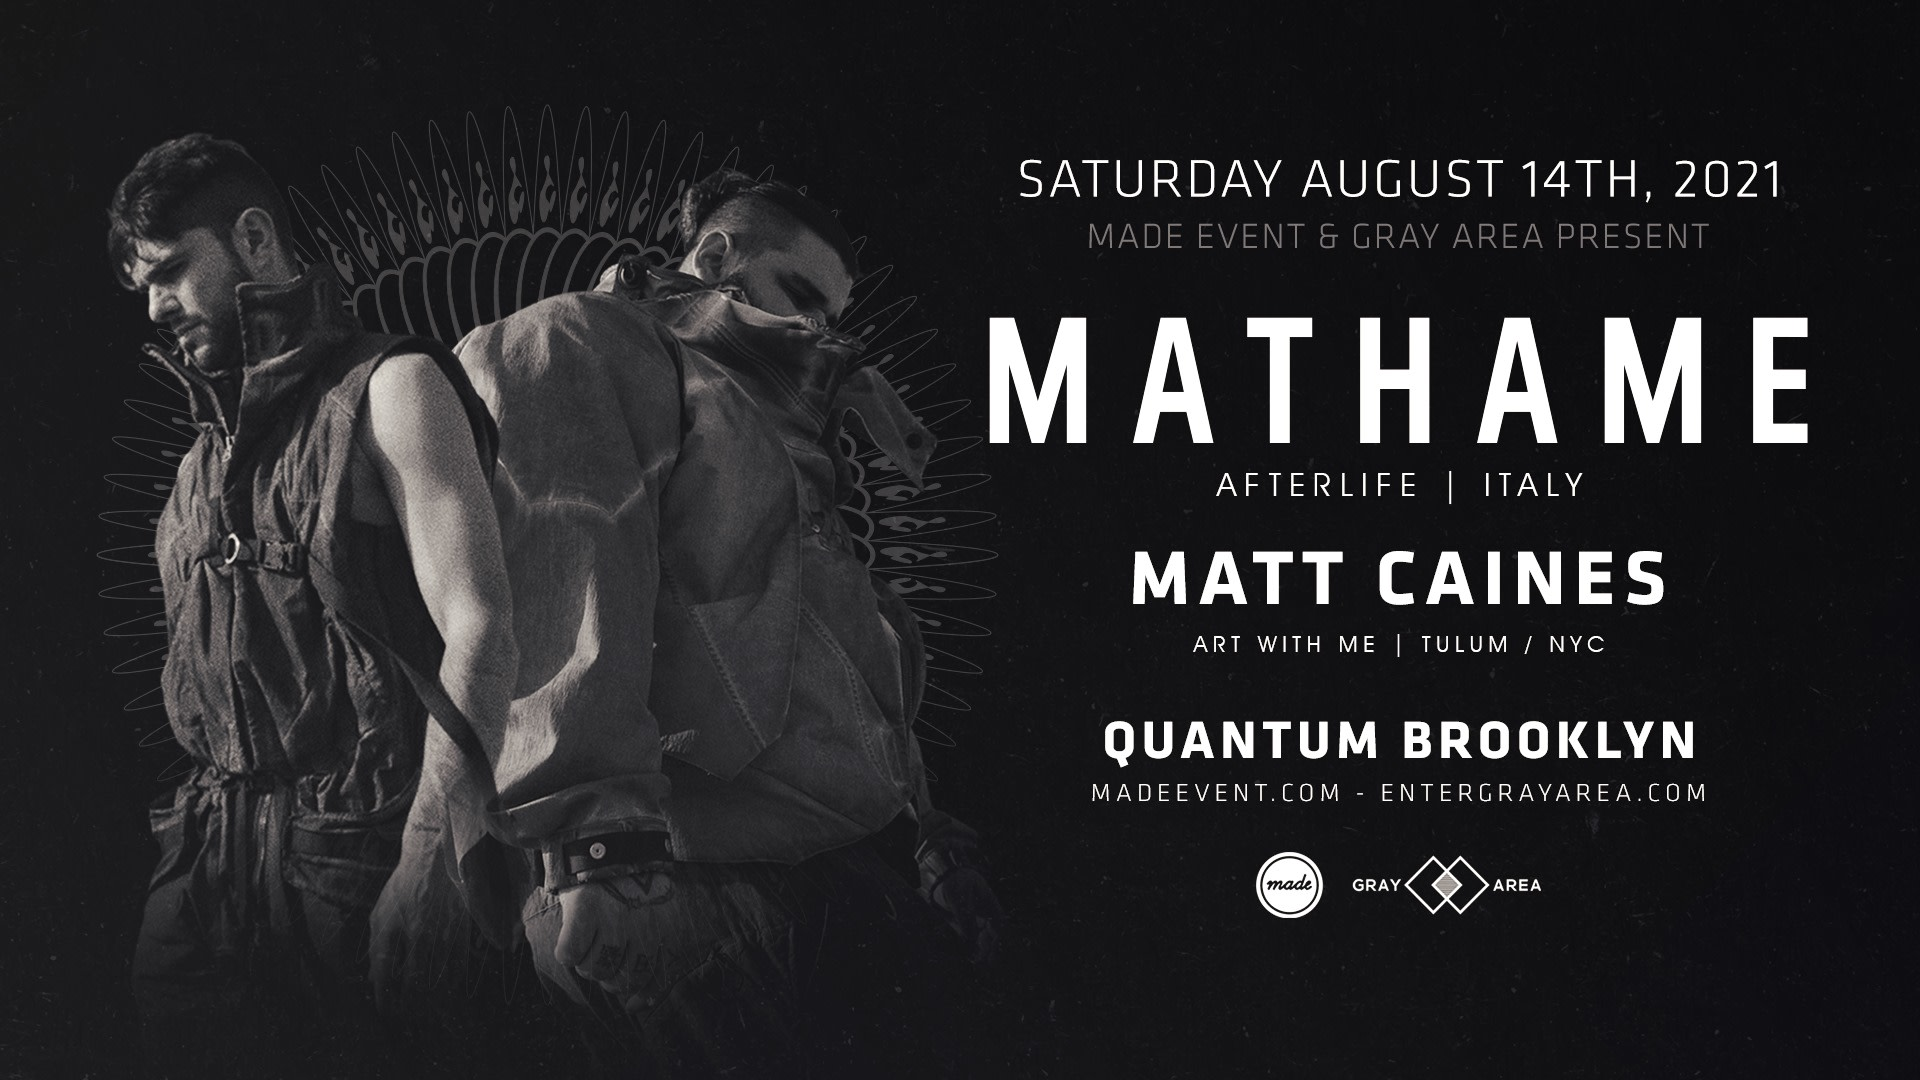 MATHAME [Afterlife] with Matt Caines